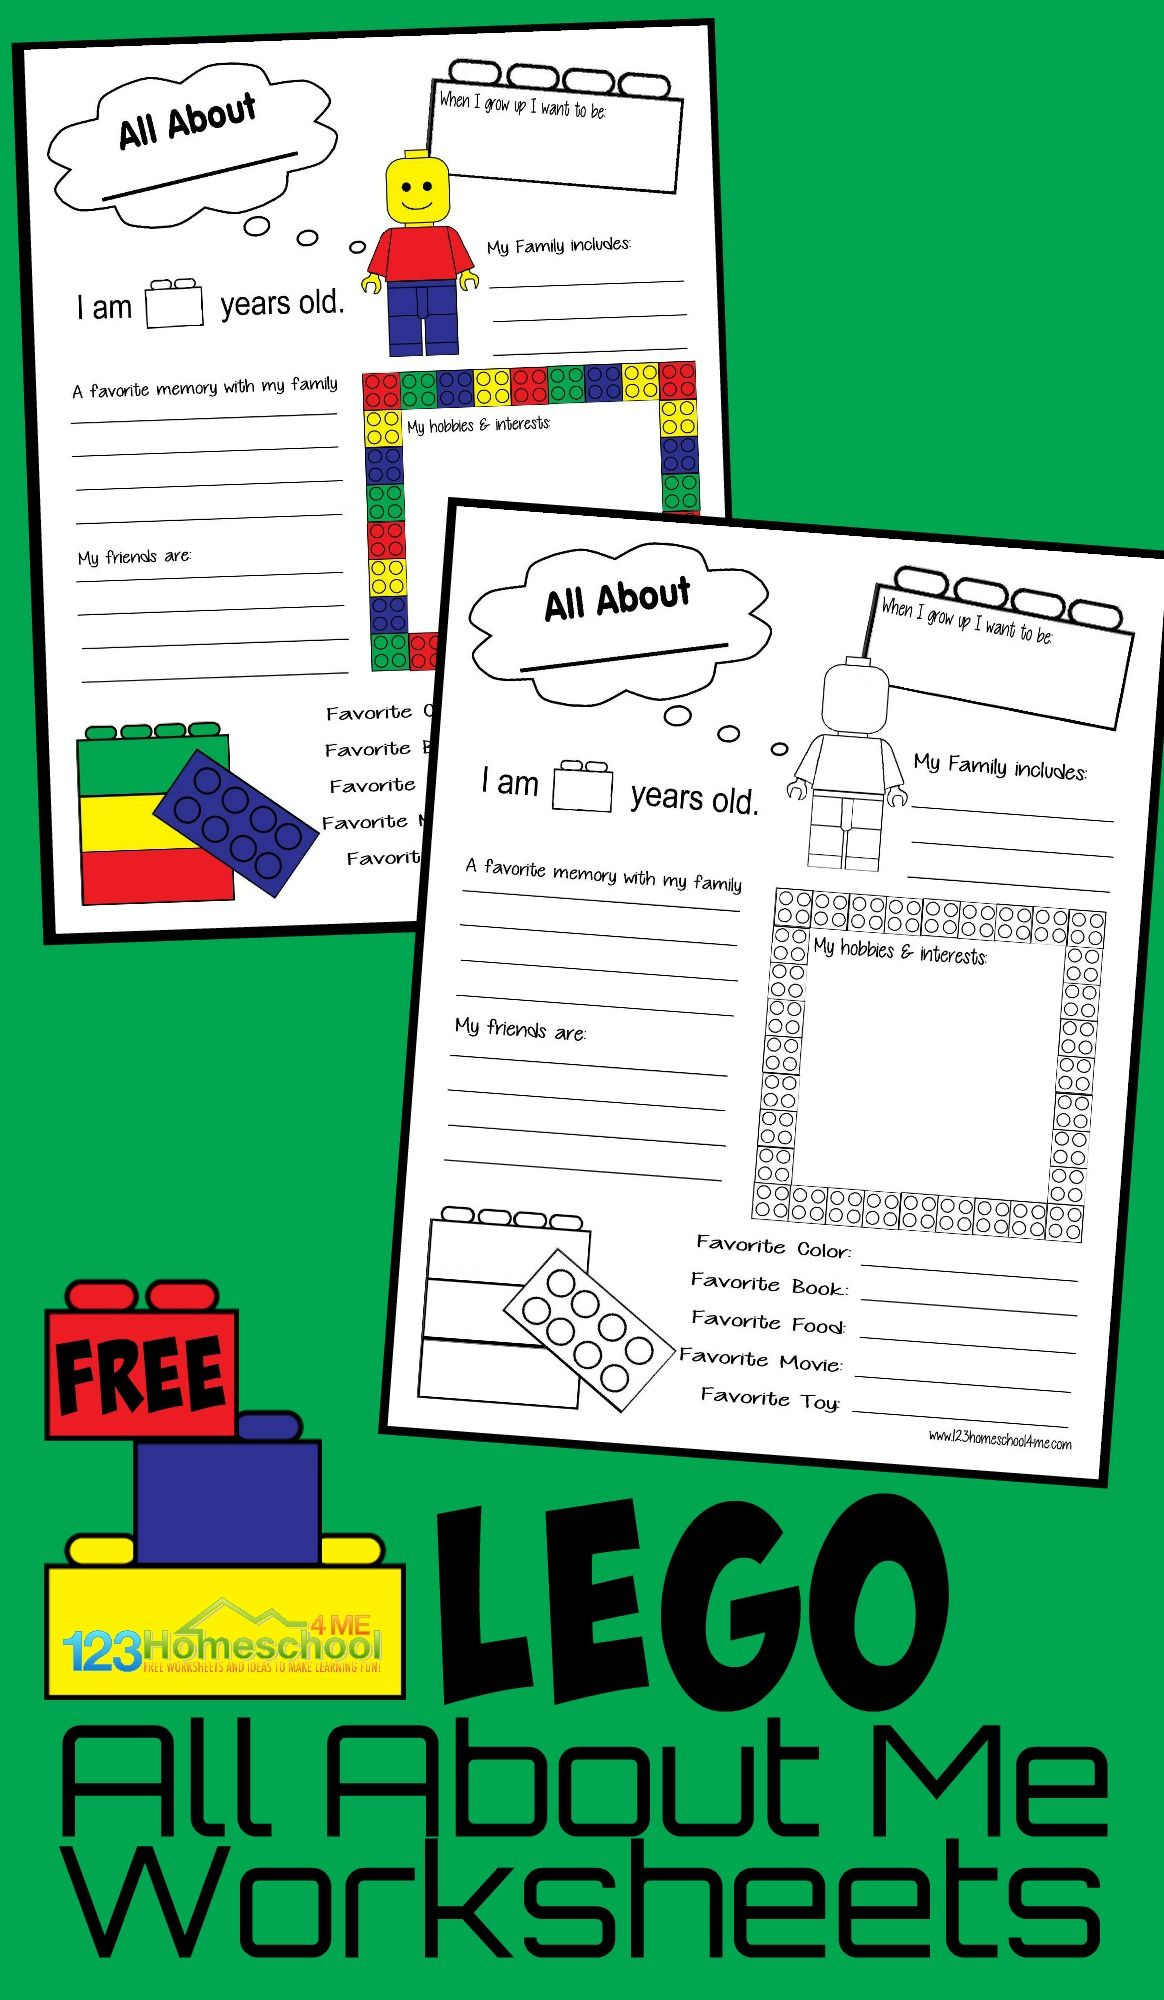 Lego All About Me Printable   All about me worksheet [ 2000 x 1164 Pixel ]